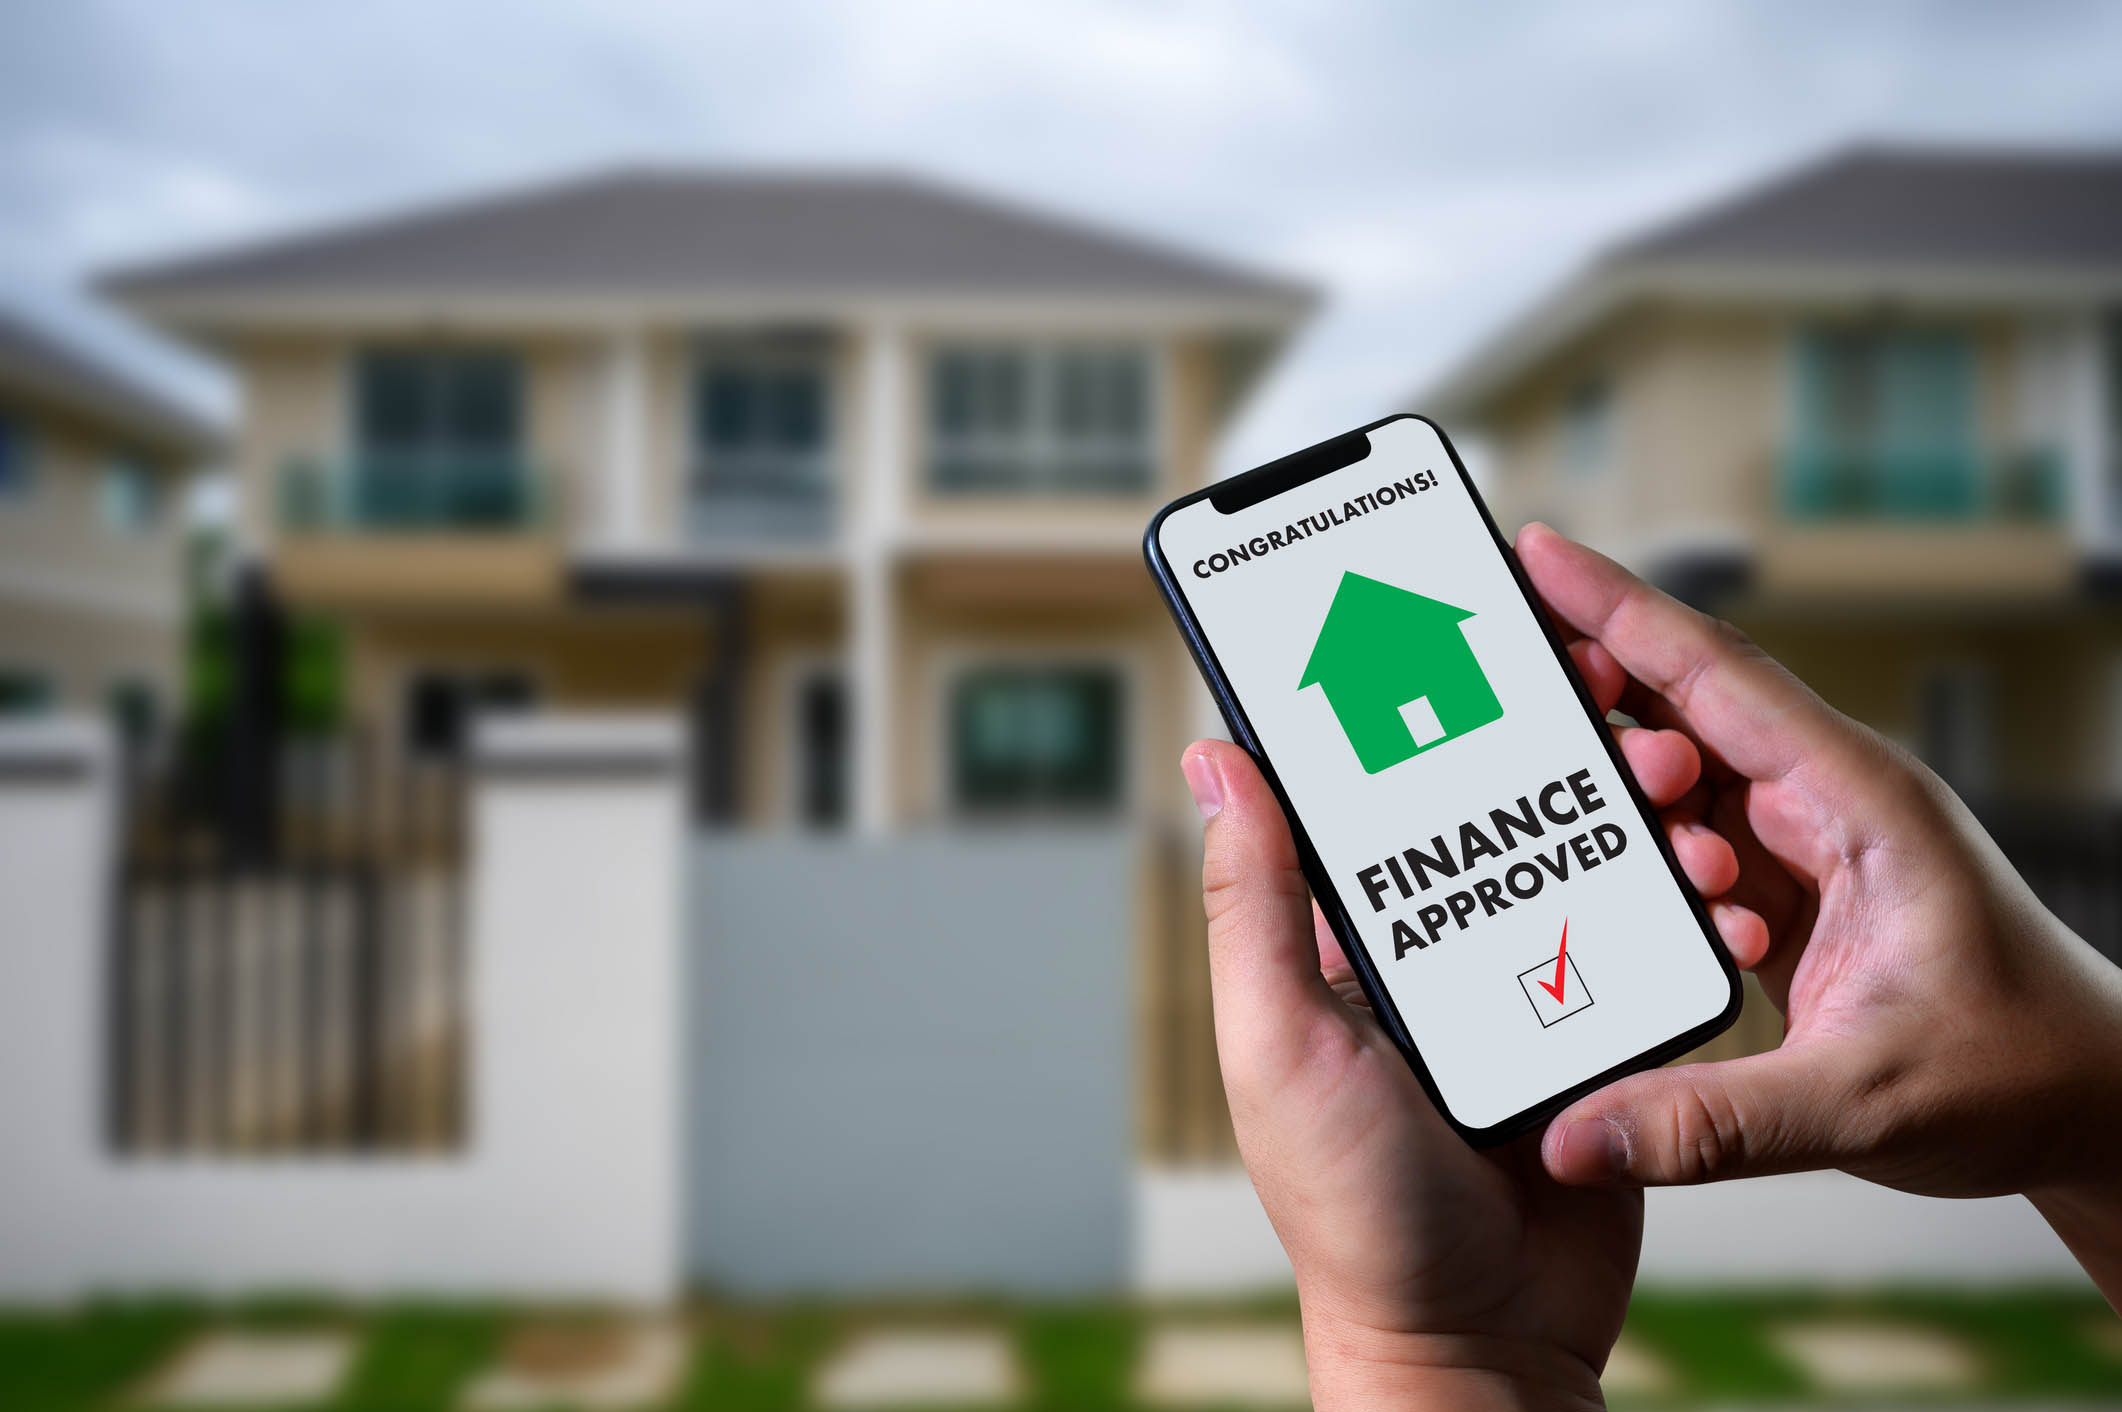 finance loan agreement and house key Mortgage Loan approval on mobile phone in a house